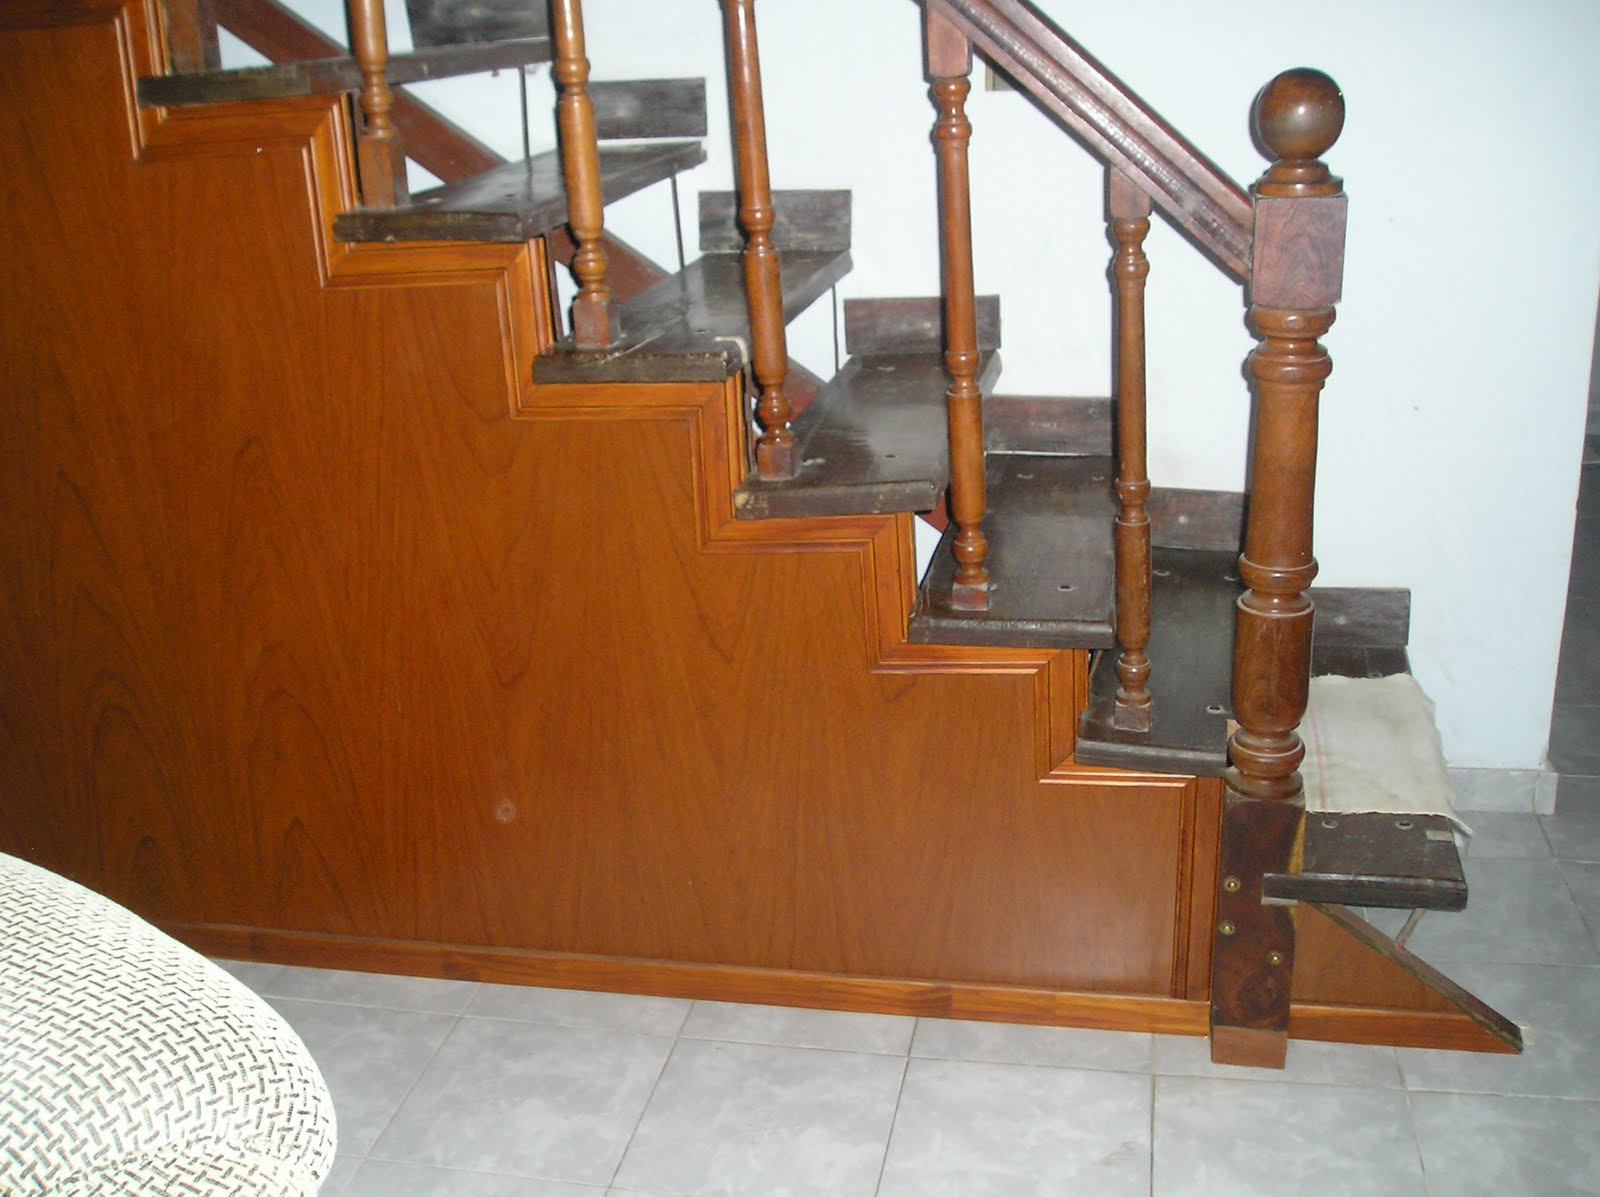 Mdf pro decoraci n bajo escalera - Decoracion bajo escalera ...